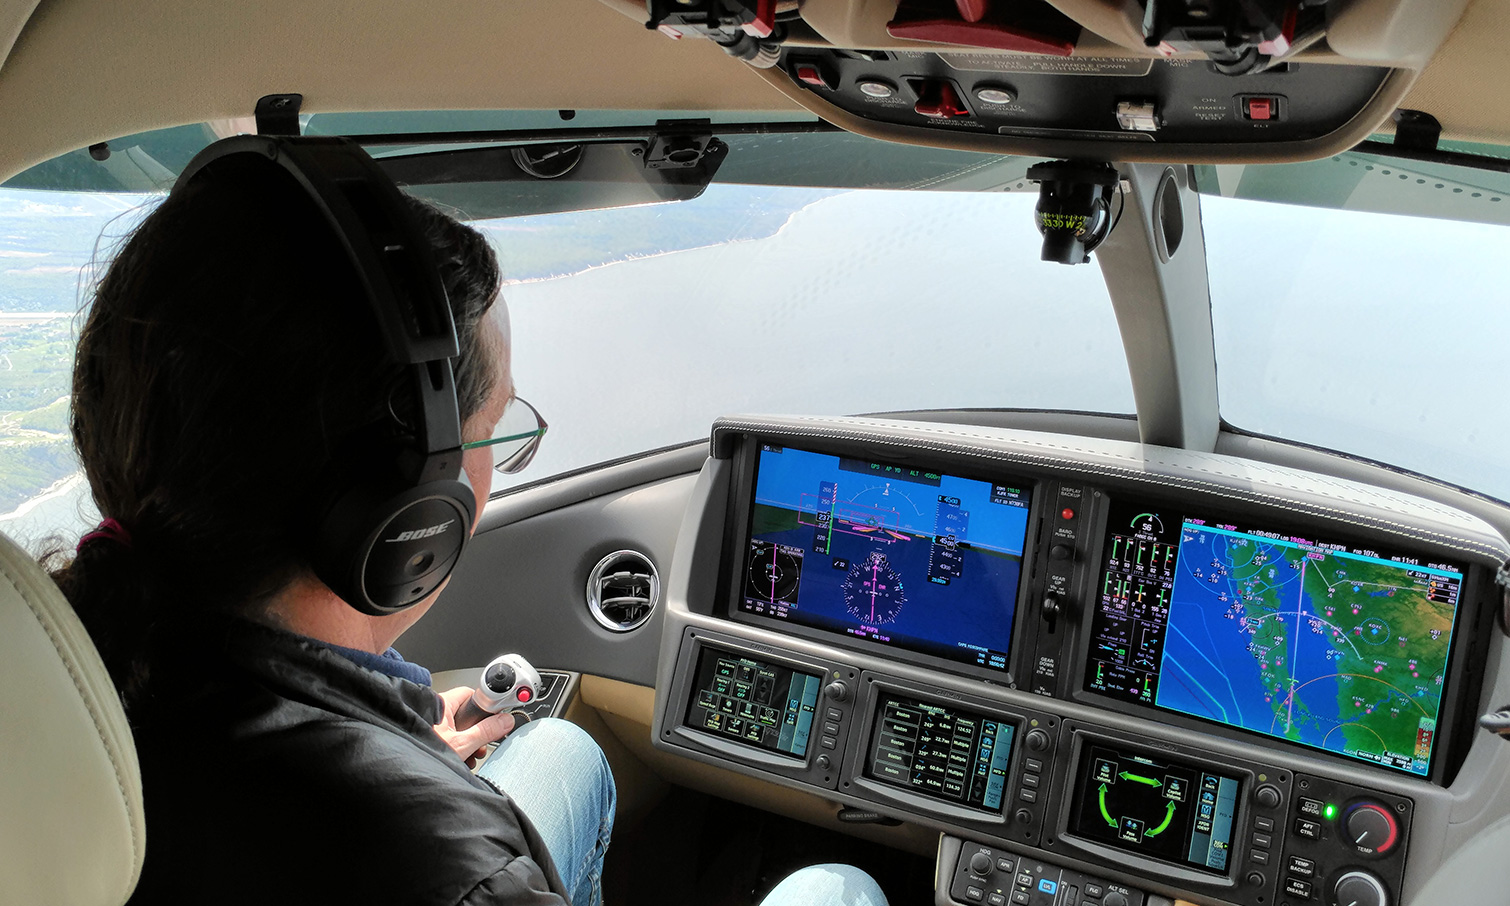 Forget Flying Cars: I Just Flew a $2 Million Personal Jet